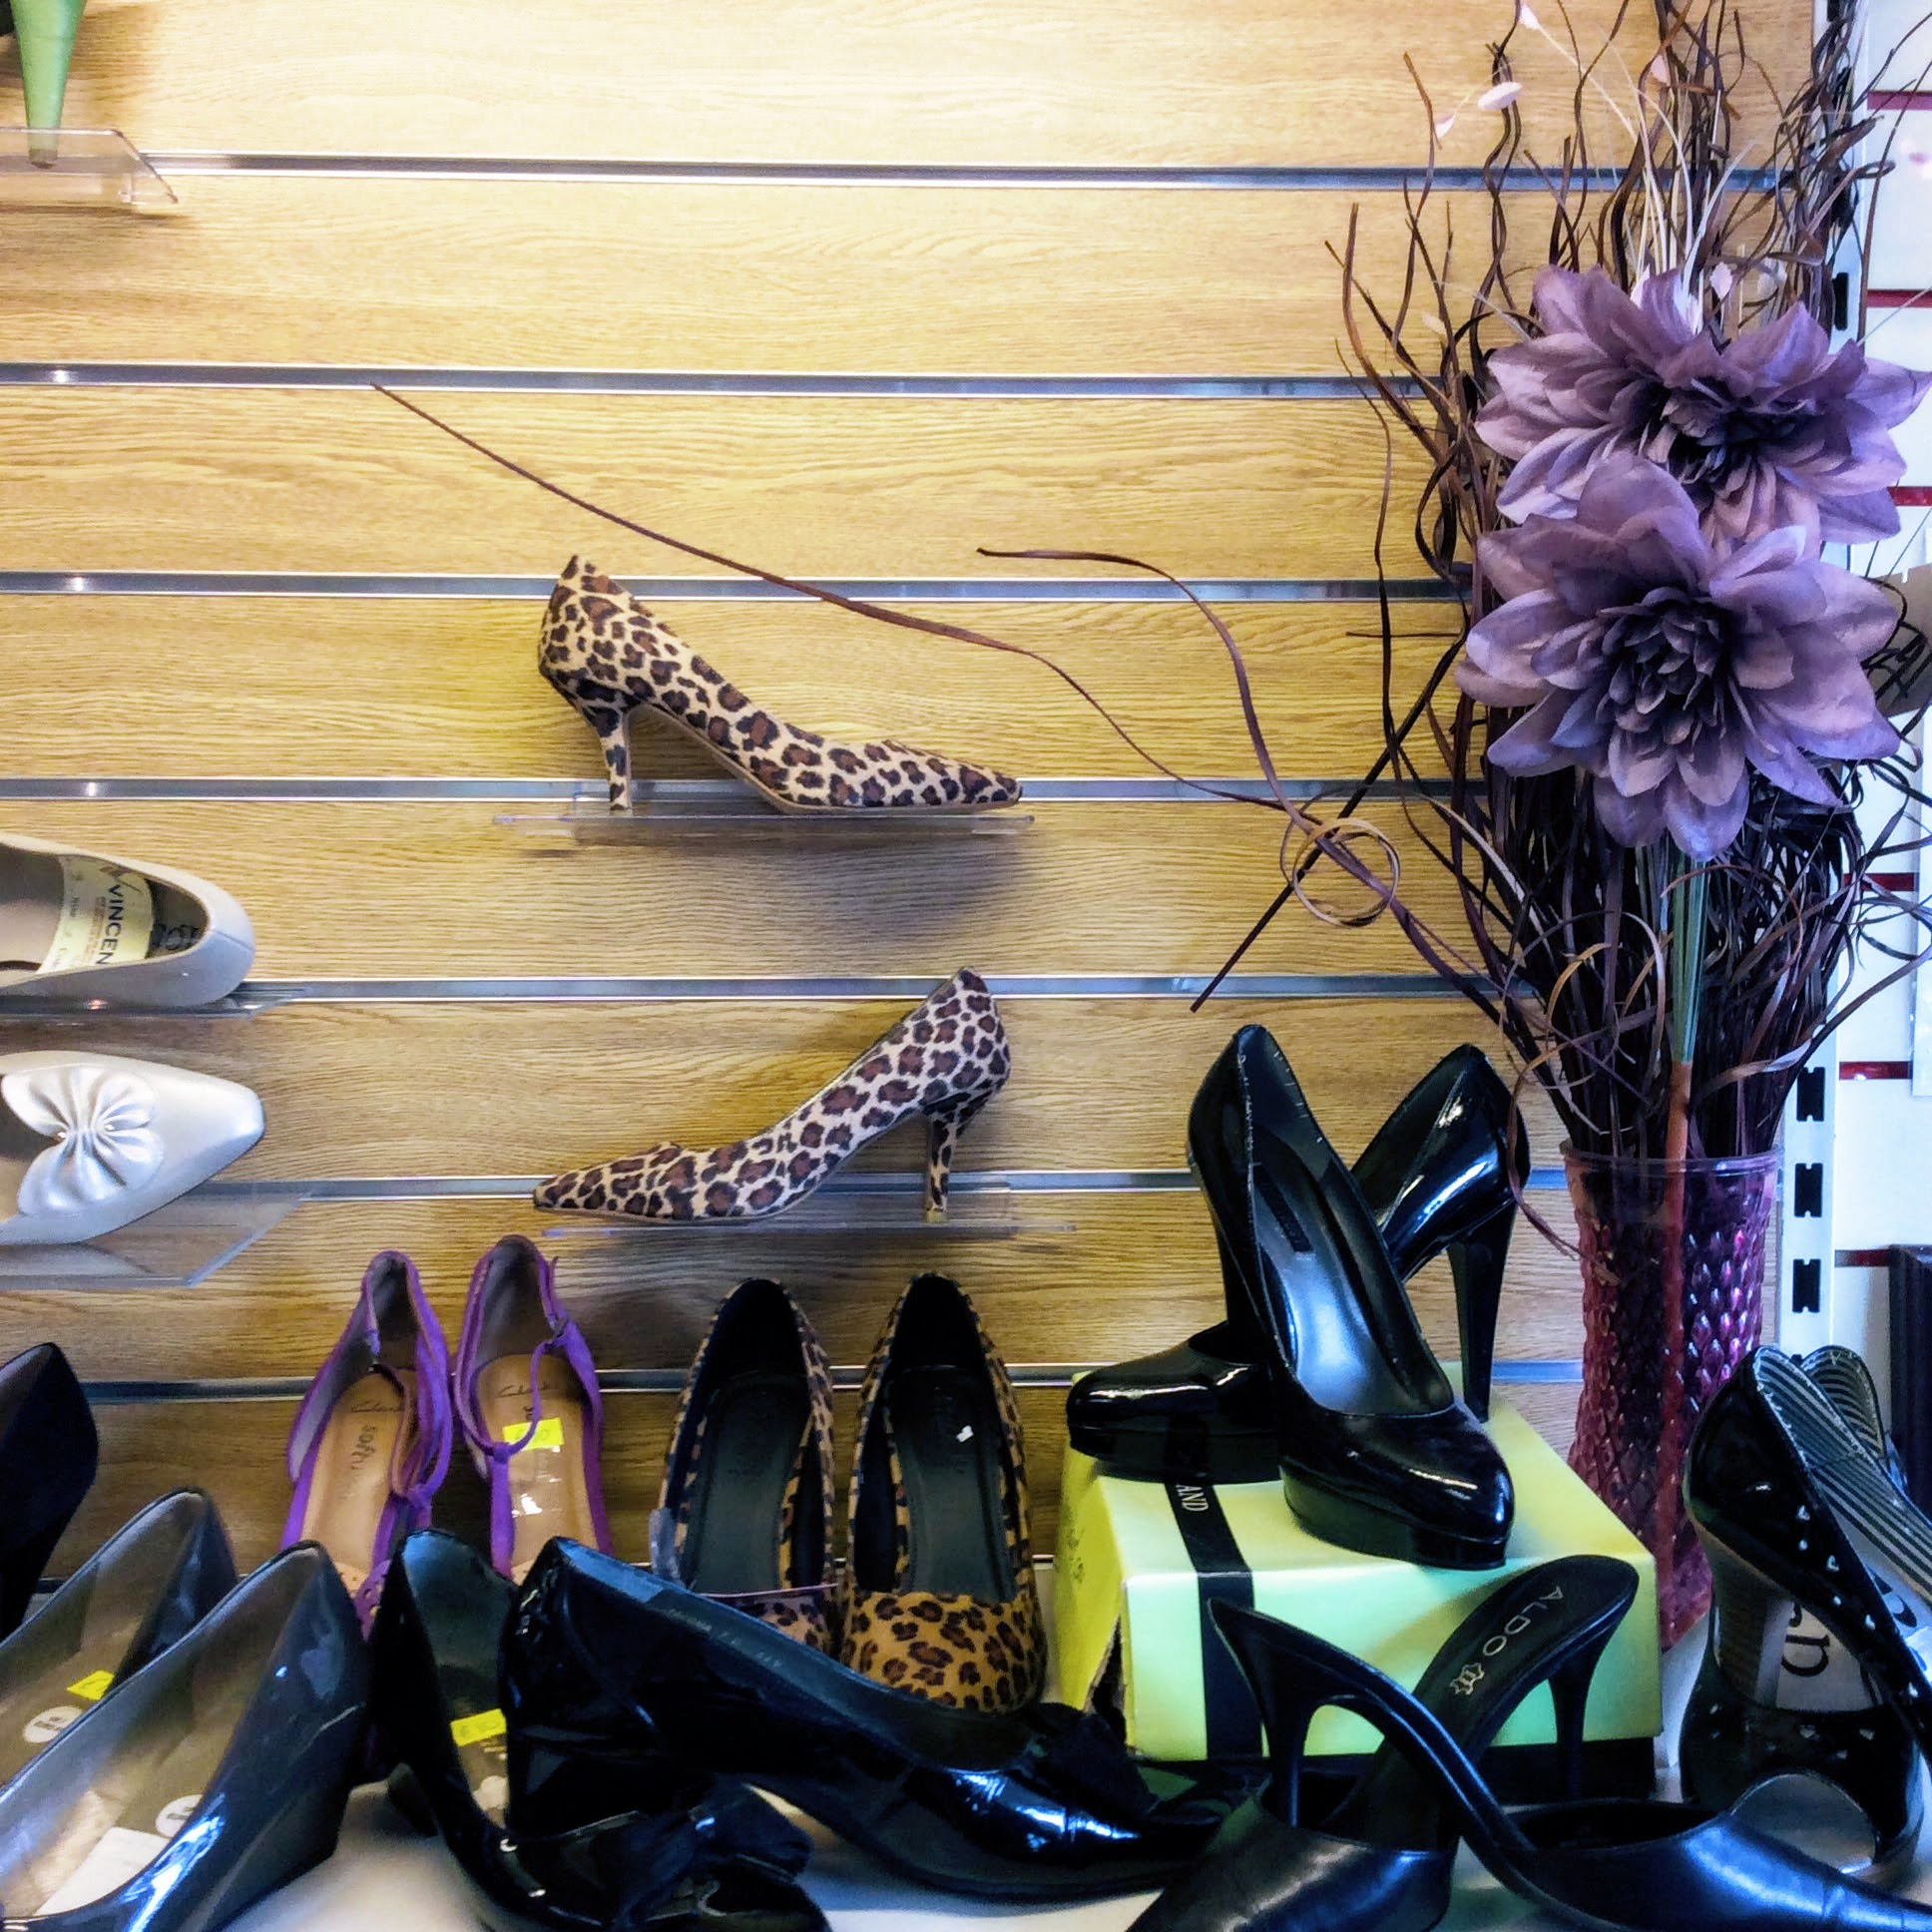 Another classic shoe display in their wonderful charity shop